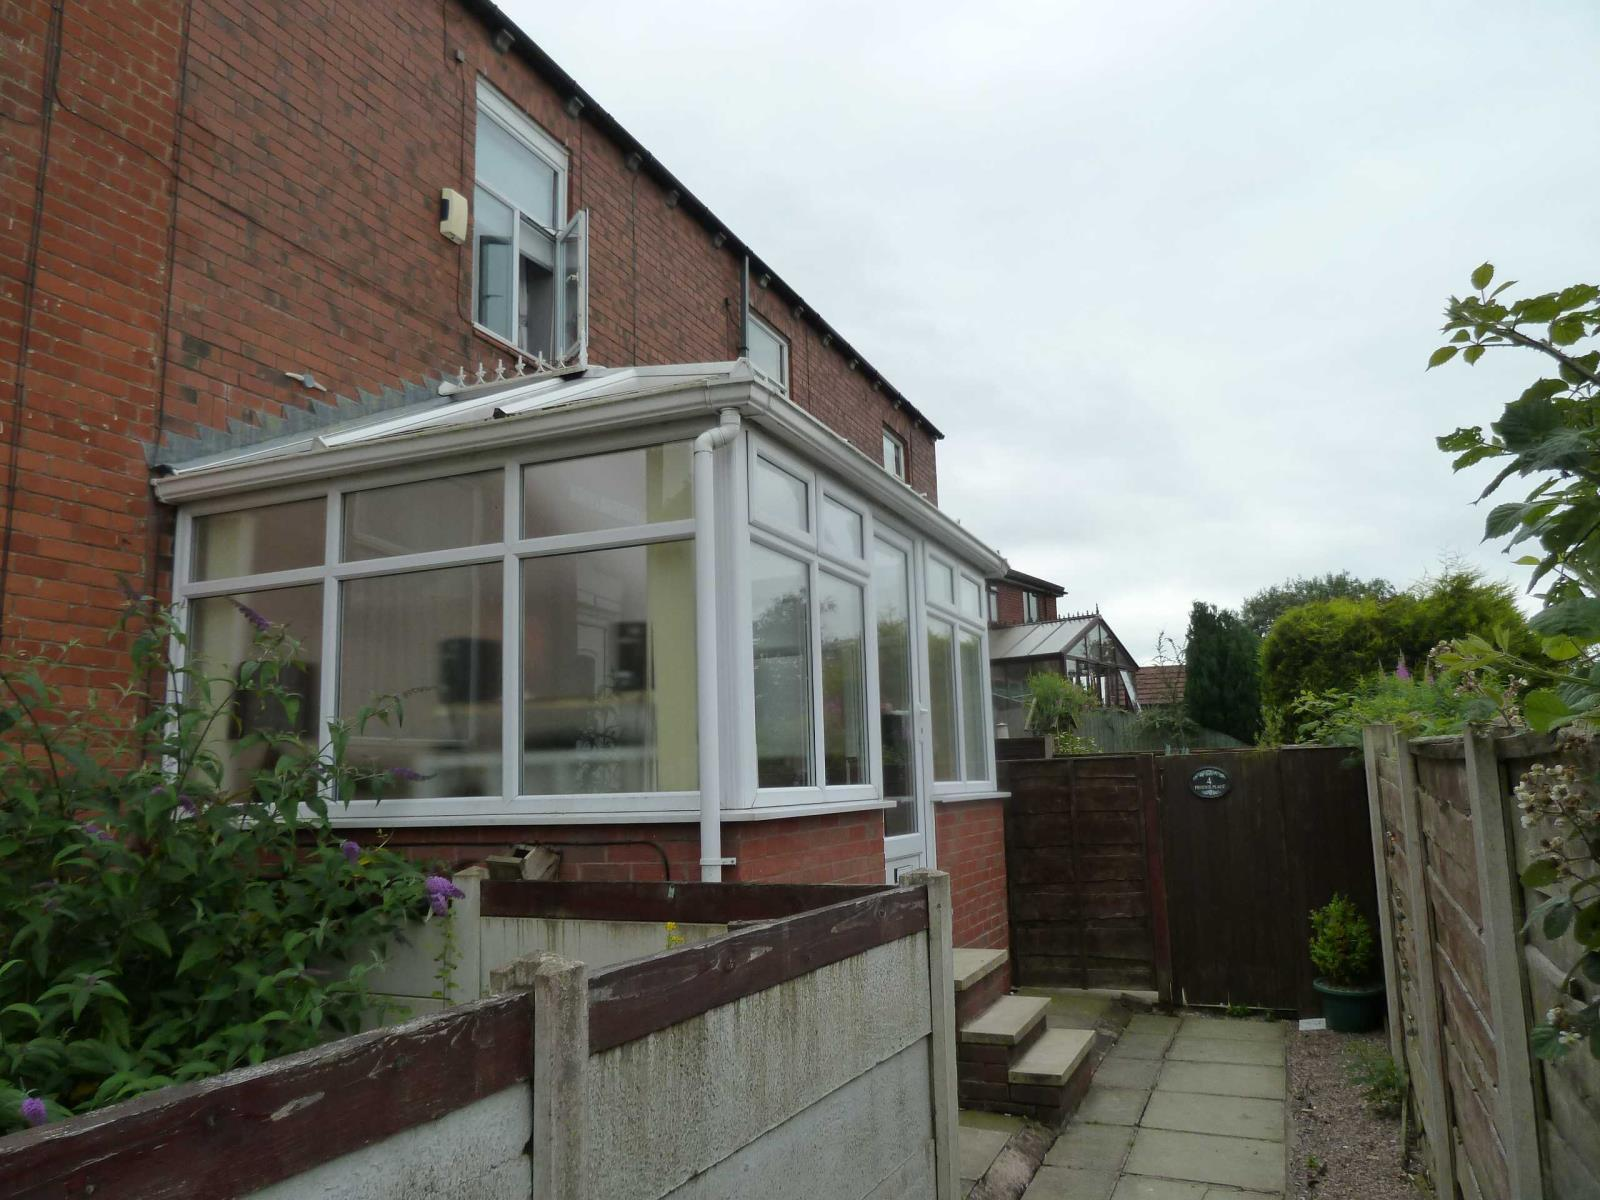 2 Bedrooms Terraced House for sale in Phoenix Place, Springhead, Saddleworth, OL4